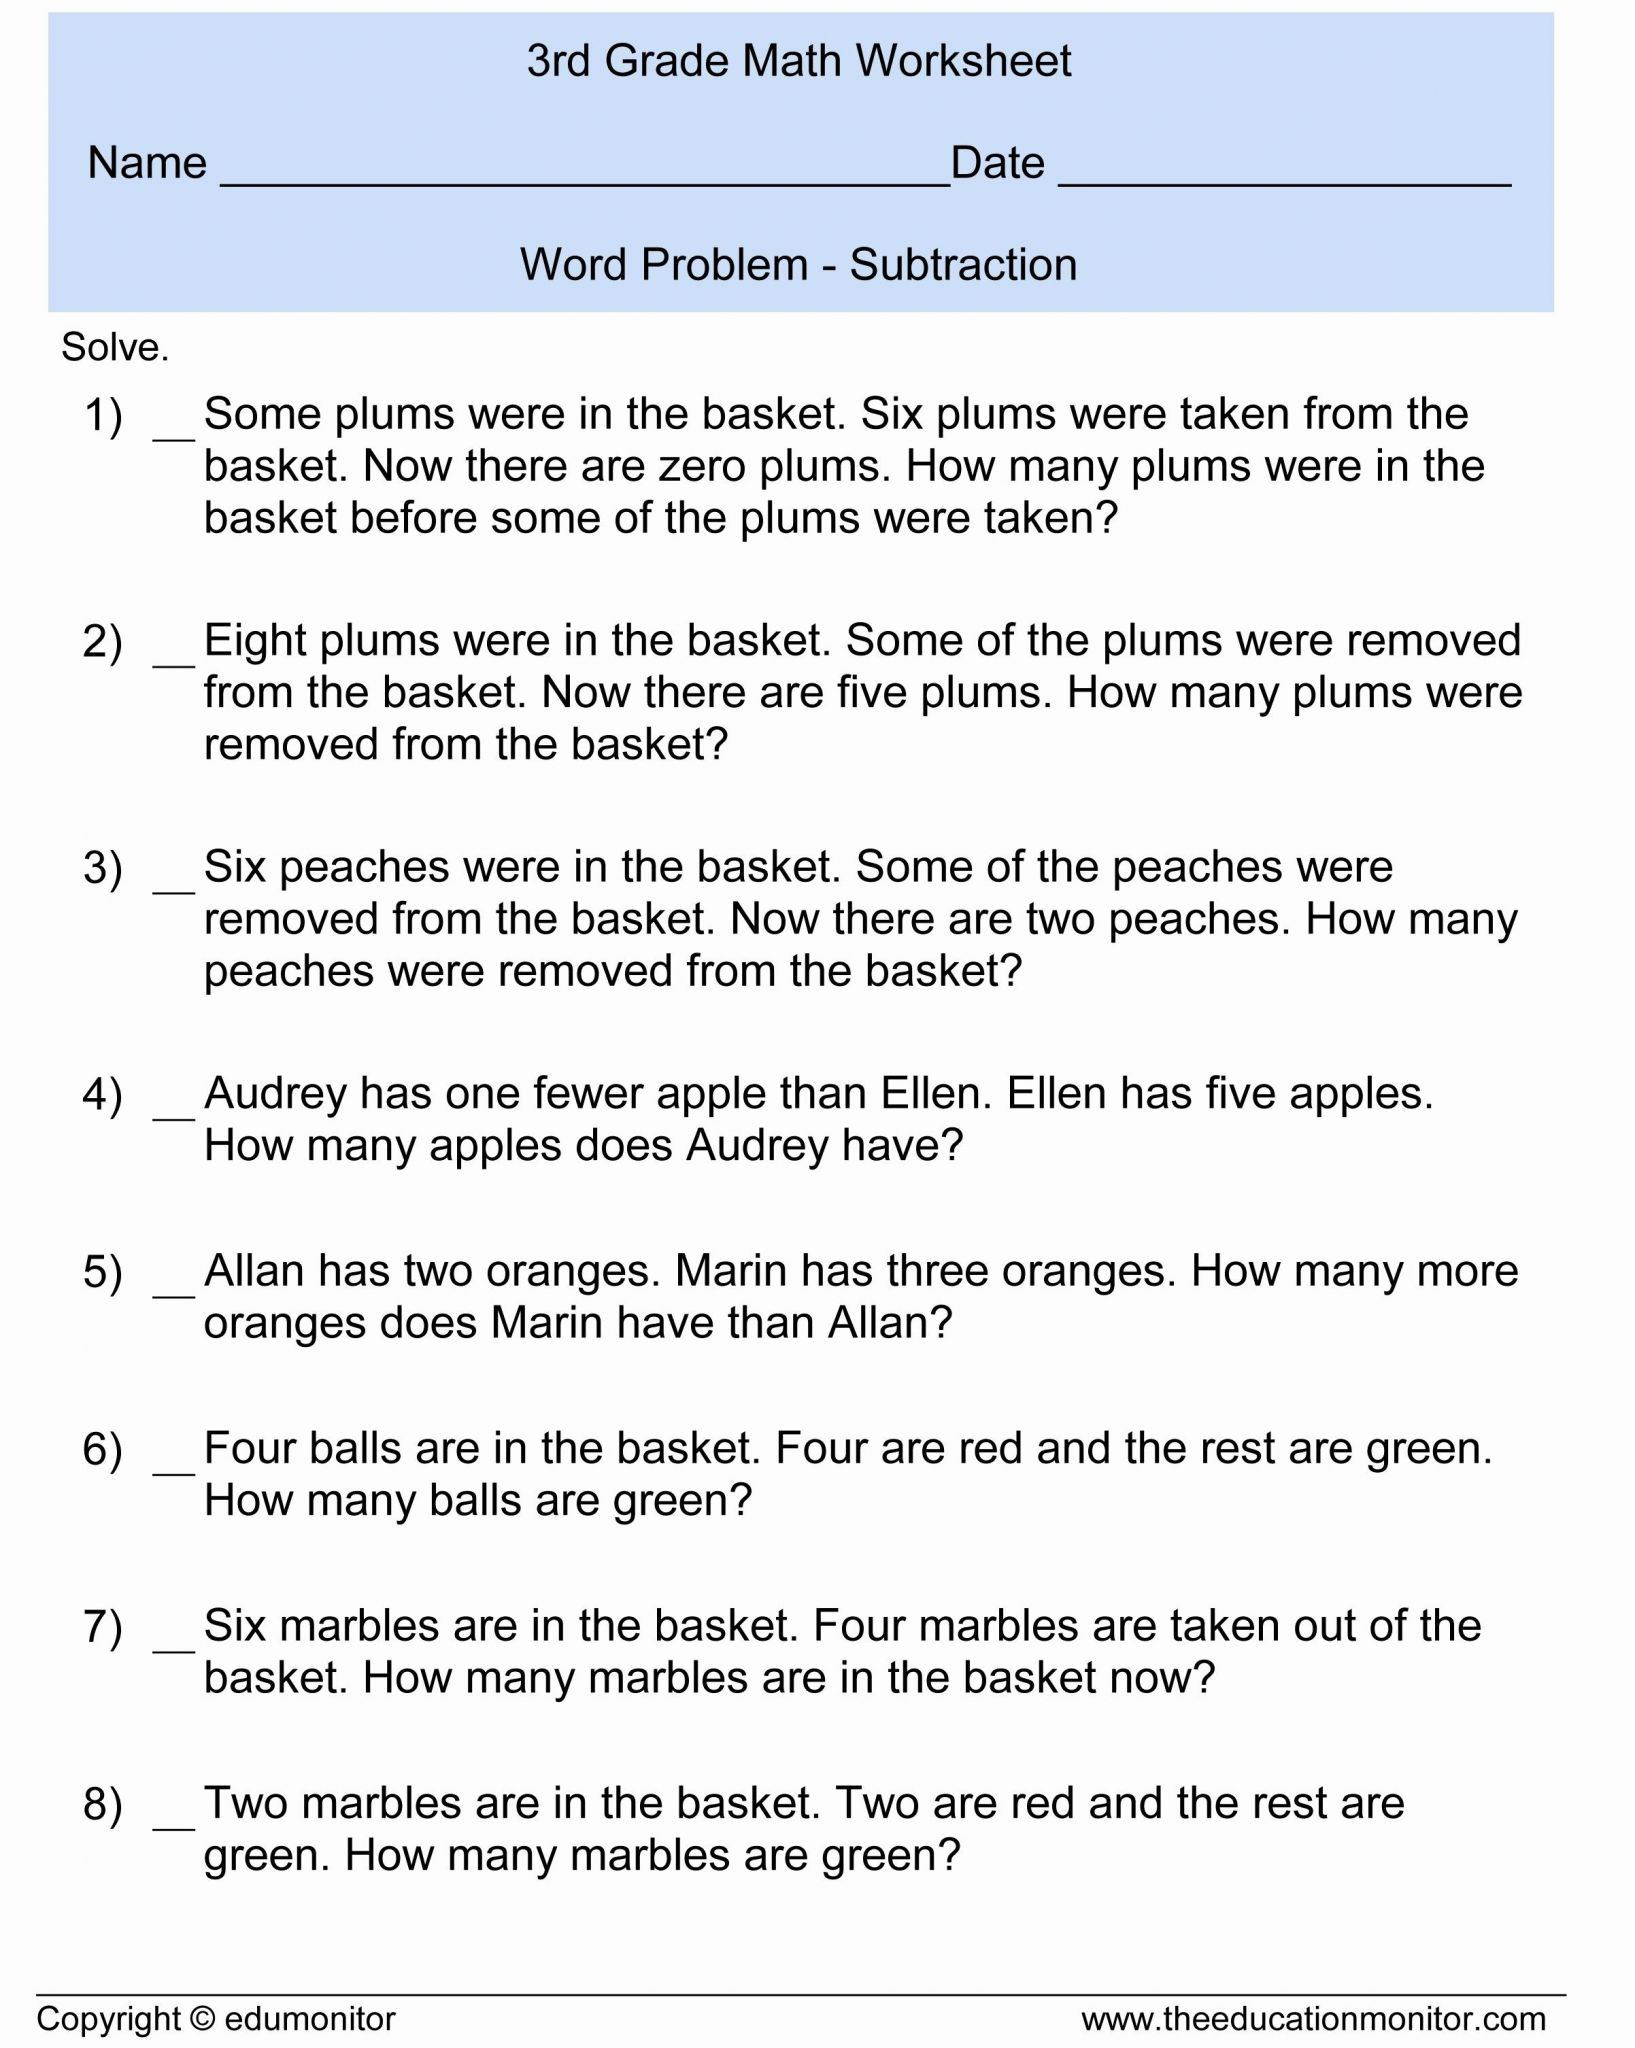 hight resolution of Estimate Quotient 4th Grade Math Worksheets   Printable Worksheets and  Activities for Teachers